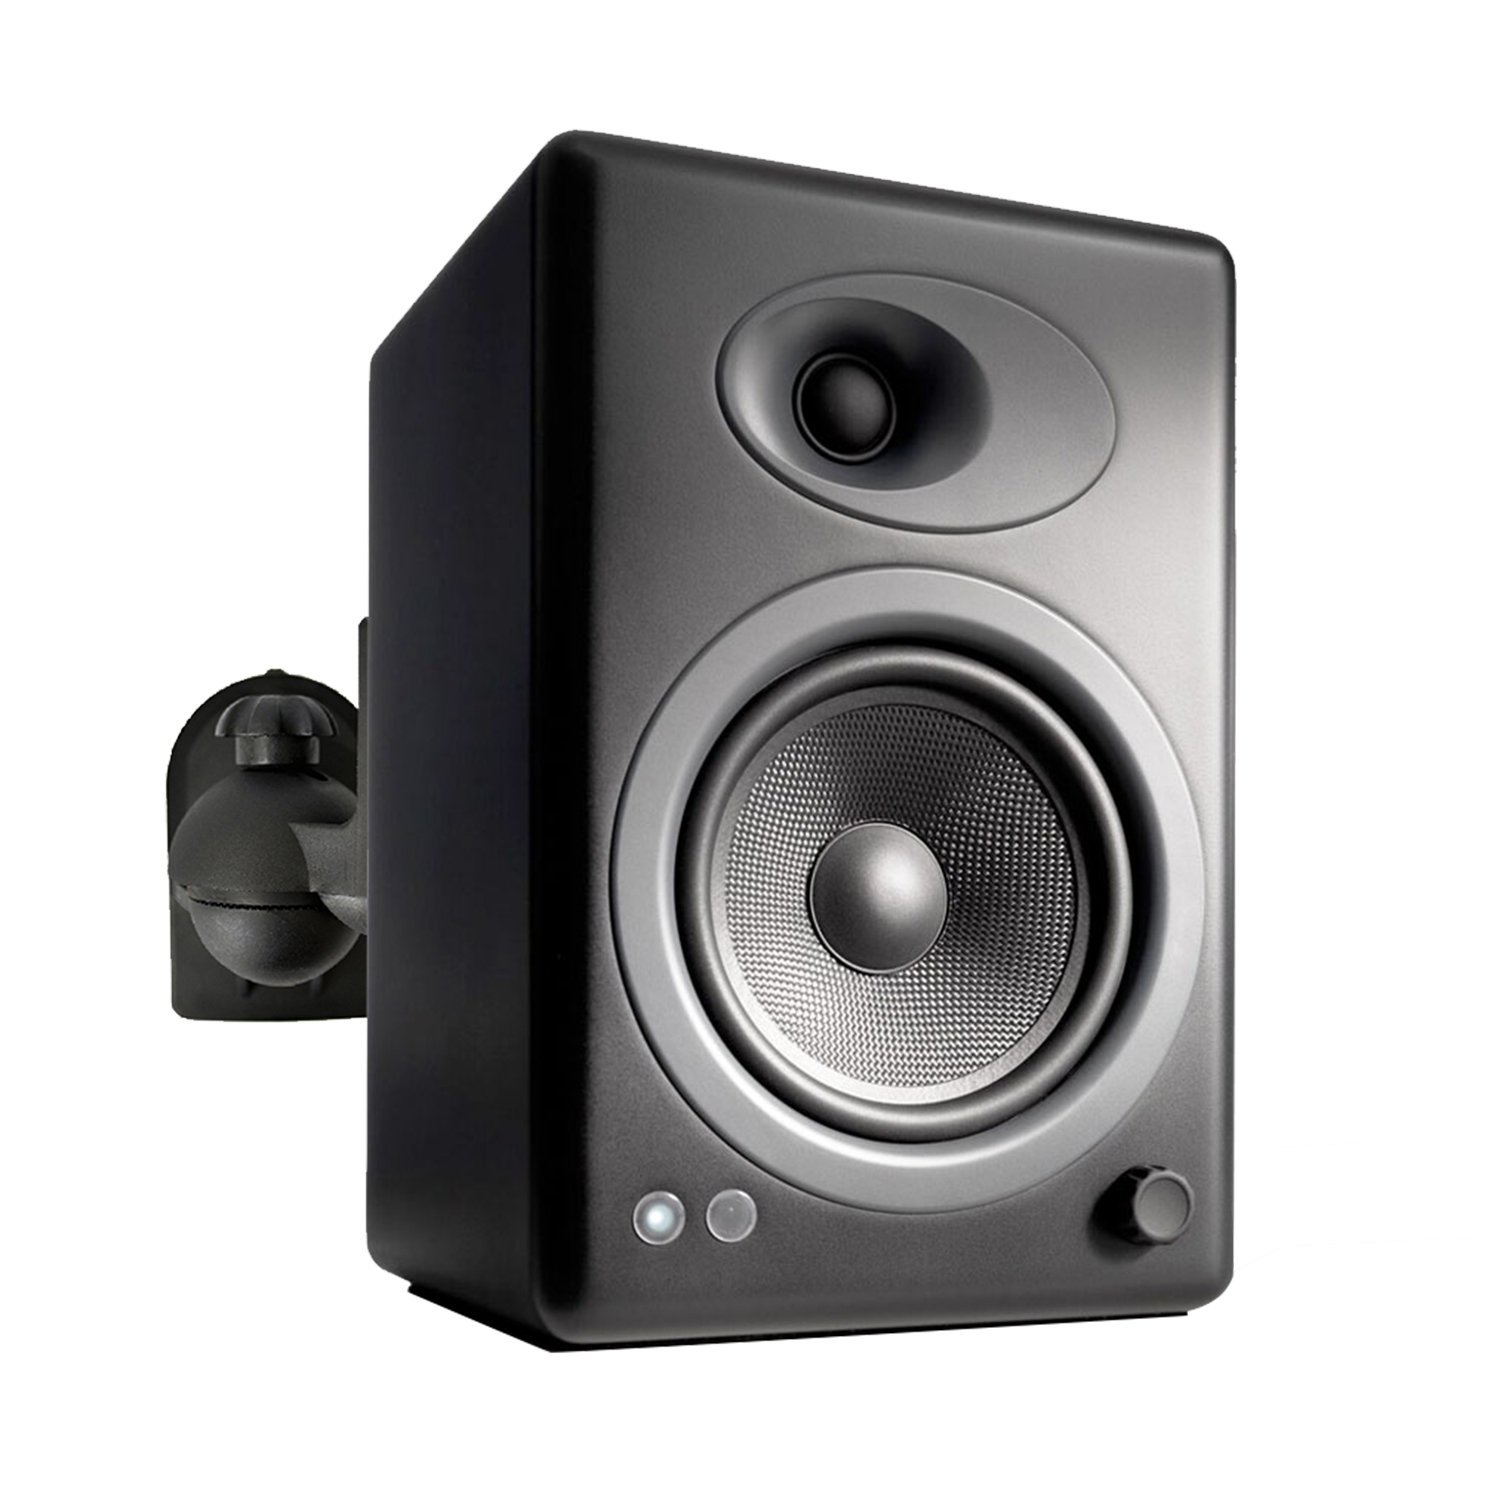 QualGear QG-SB-002-BLK UL Listed Universal Speaker Wall Mount for Most Speakers up to 3.5kg/7.7lbs, Black